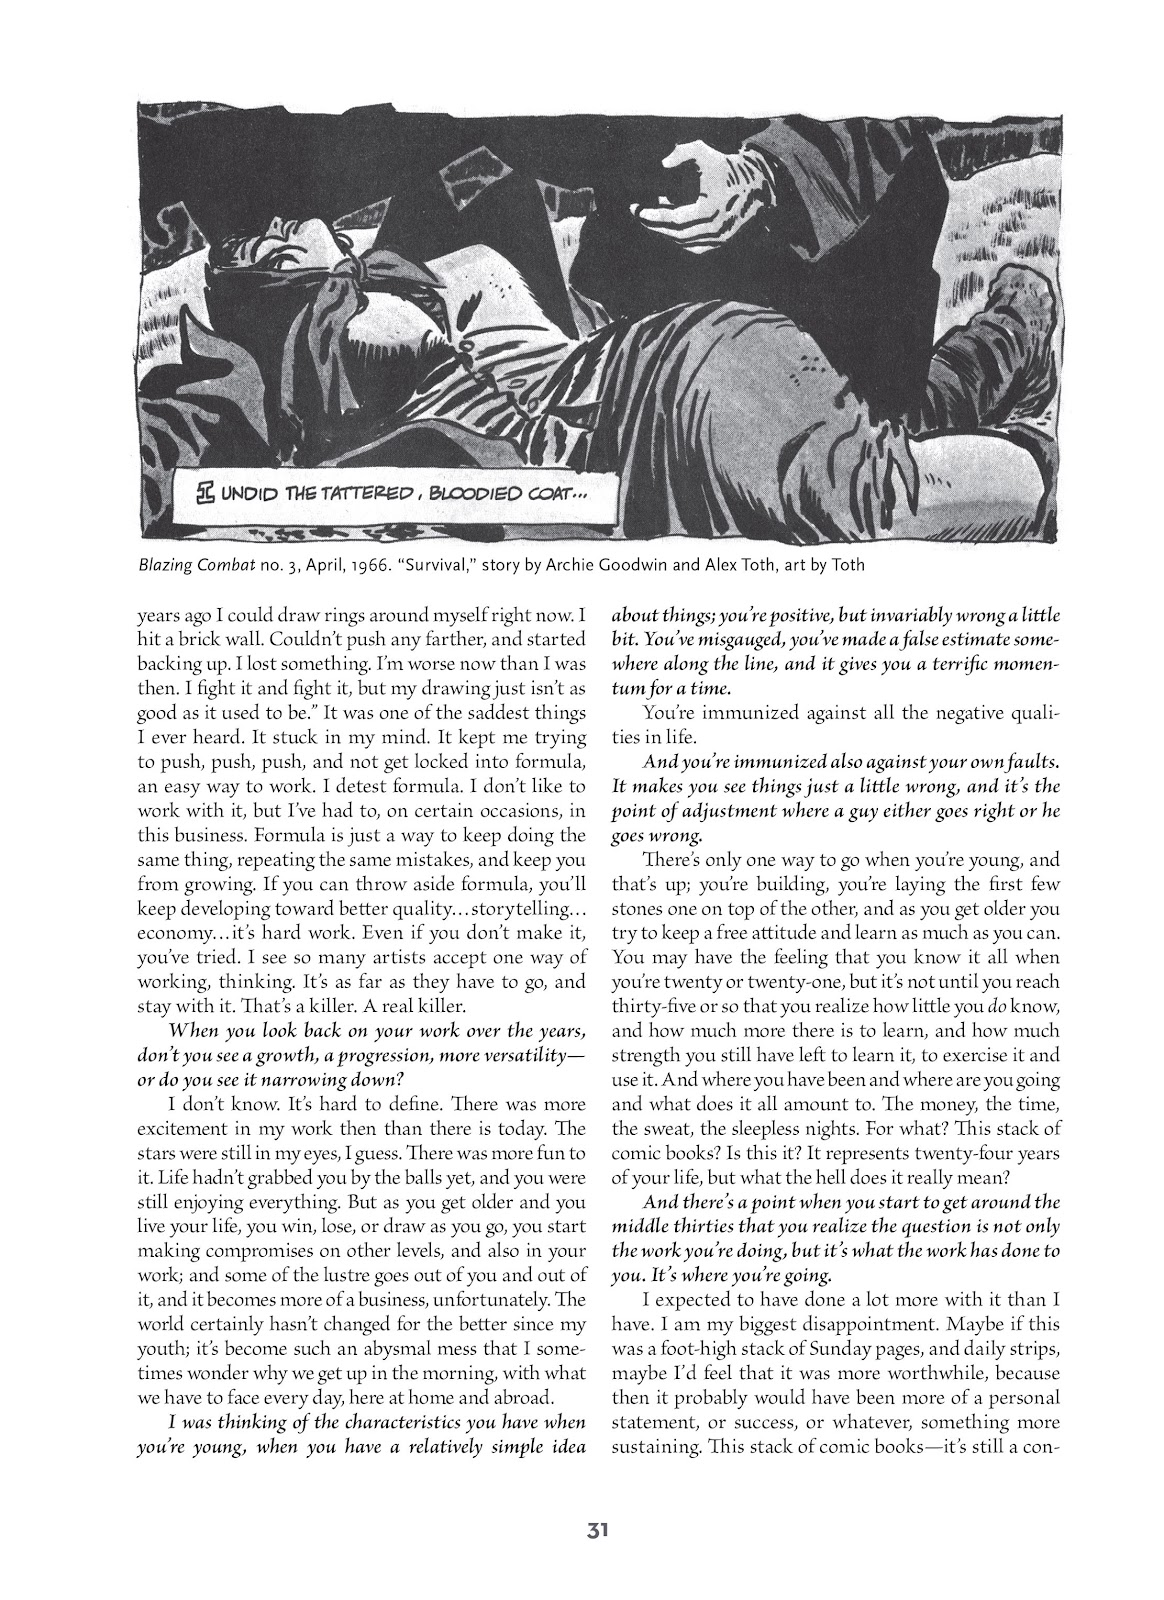 Read online Setting the Standard: Comics by Alex Toth 1952-1954 comic -  Issue # TPB (Part 1) - 30